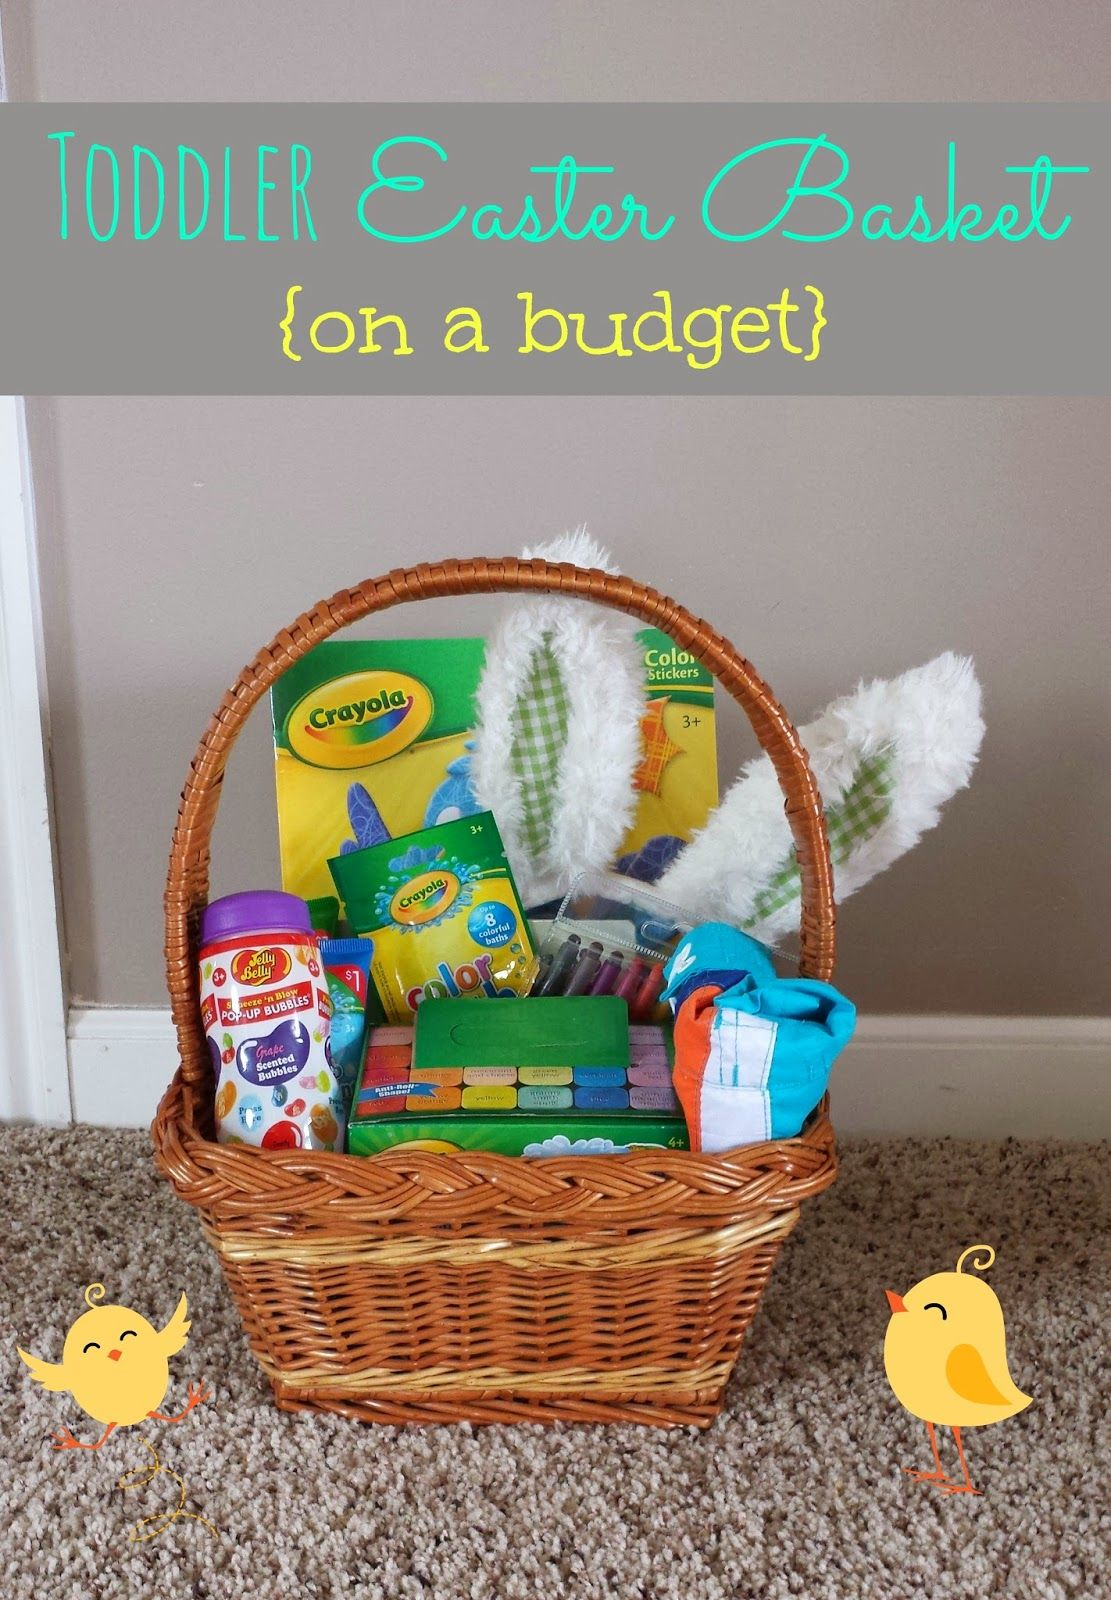 Simple suburbia toddler easter basket ideas coloring book 1 simple suburbia toddler easter basket ideas coloring book 1 crayons 2 bath negle Image collections